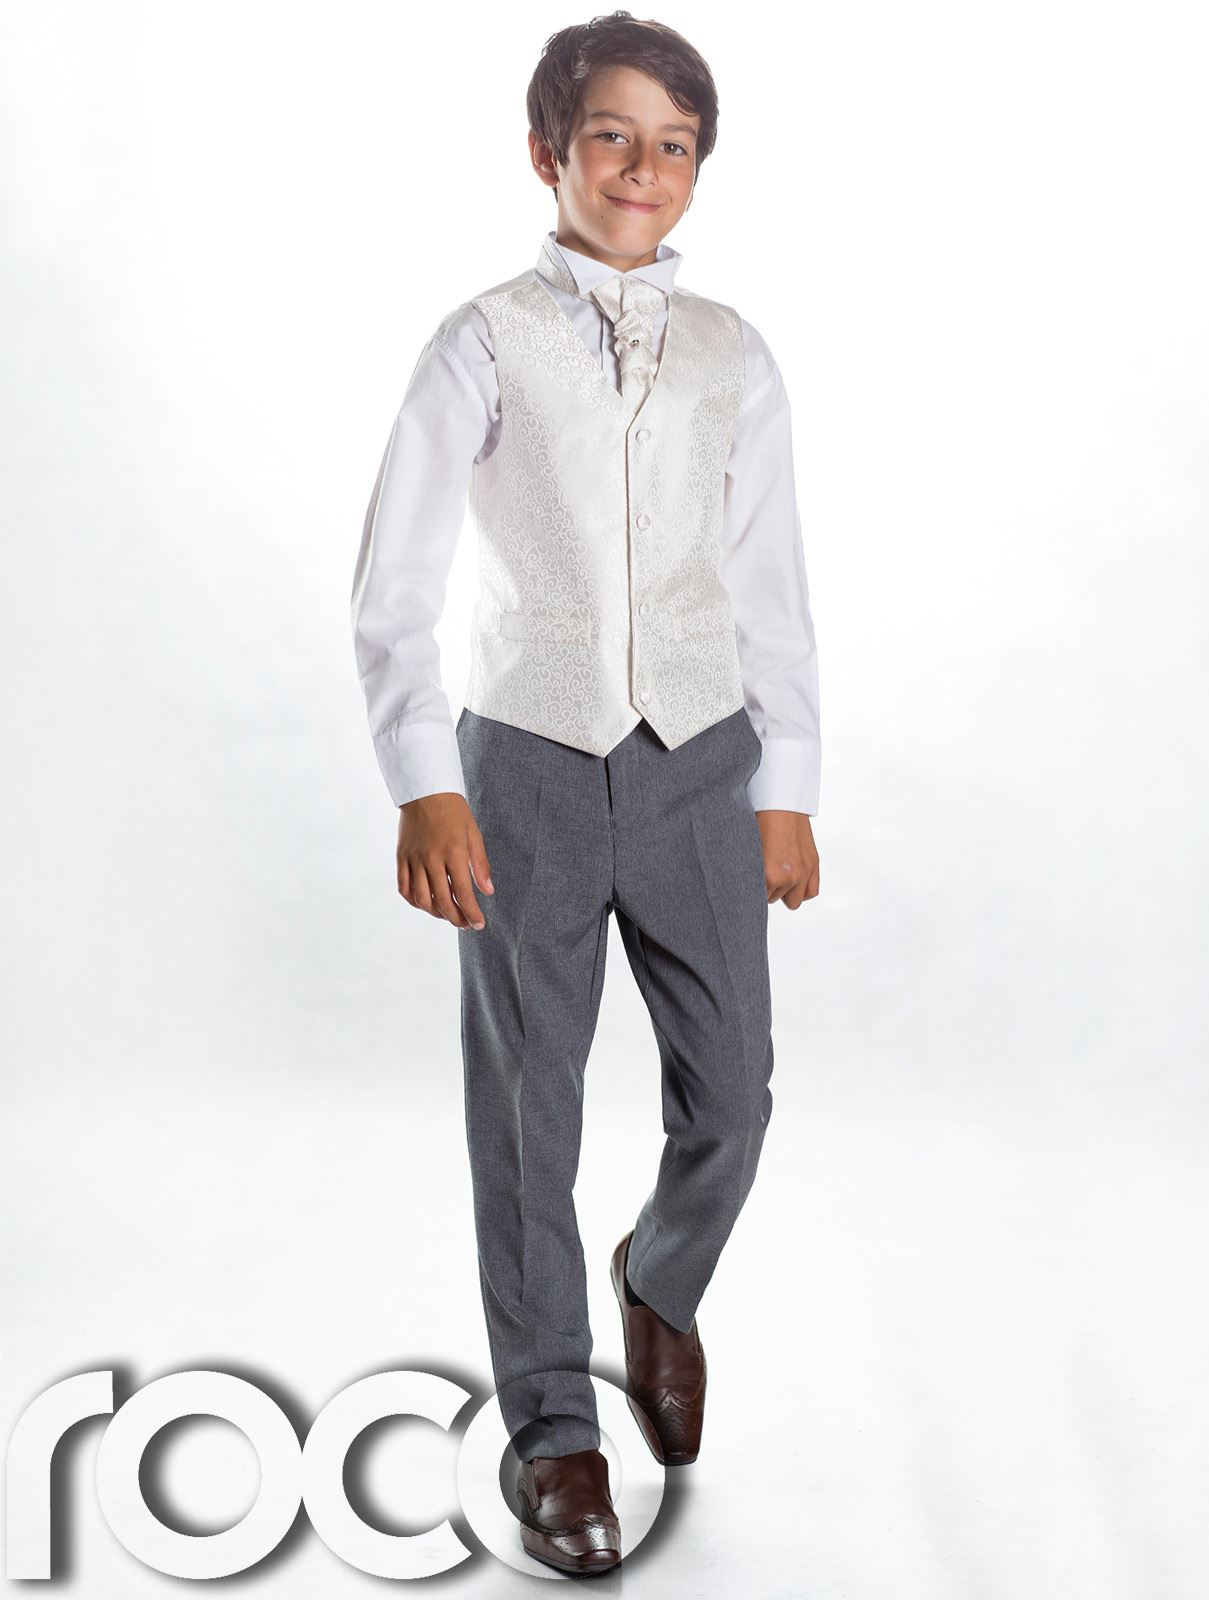 Getting your little guy ready for that special occasion will be a breeze with our new season edit of boys' occasionwear. Christening, wedding or family party, whatever the celebration, he'll look super smart in our boys' suits, shirts and jumpers. Finish his look with a snappy pair of leather shoes and a bow tie.